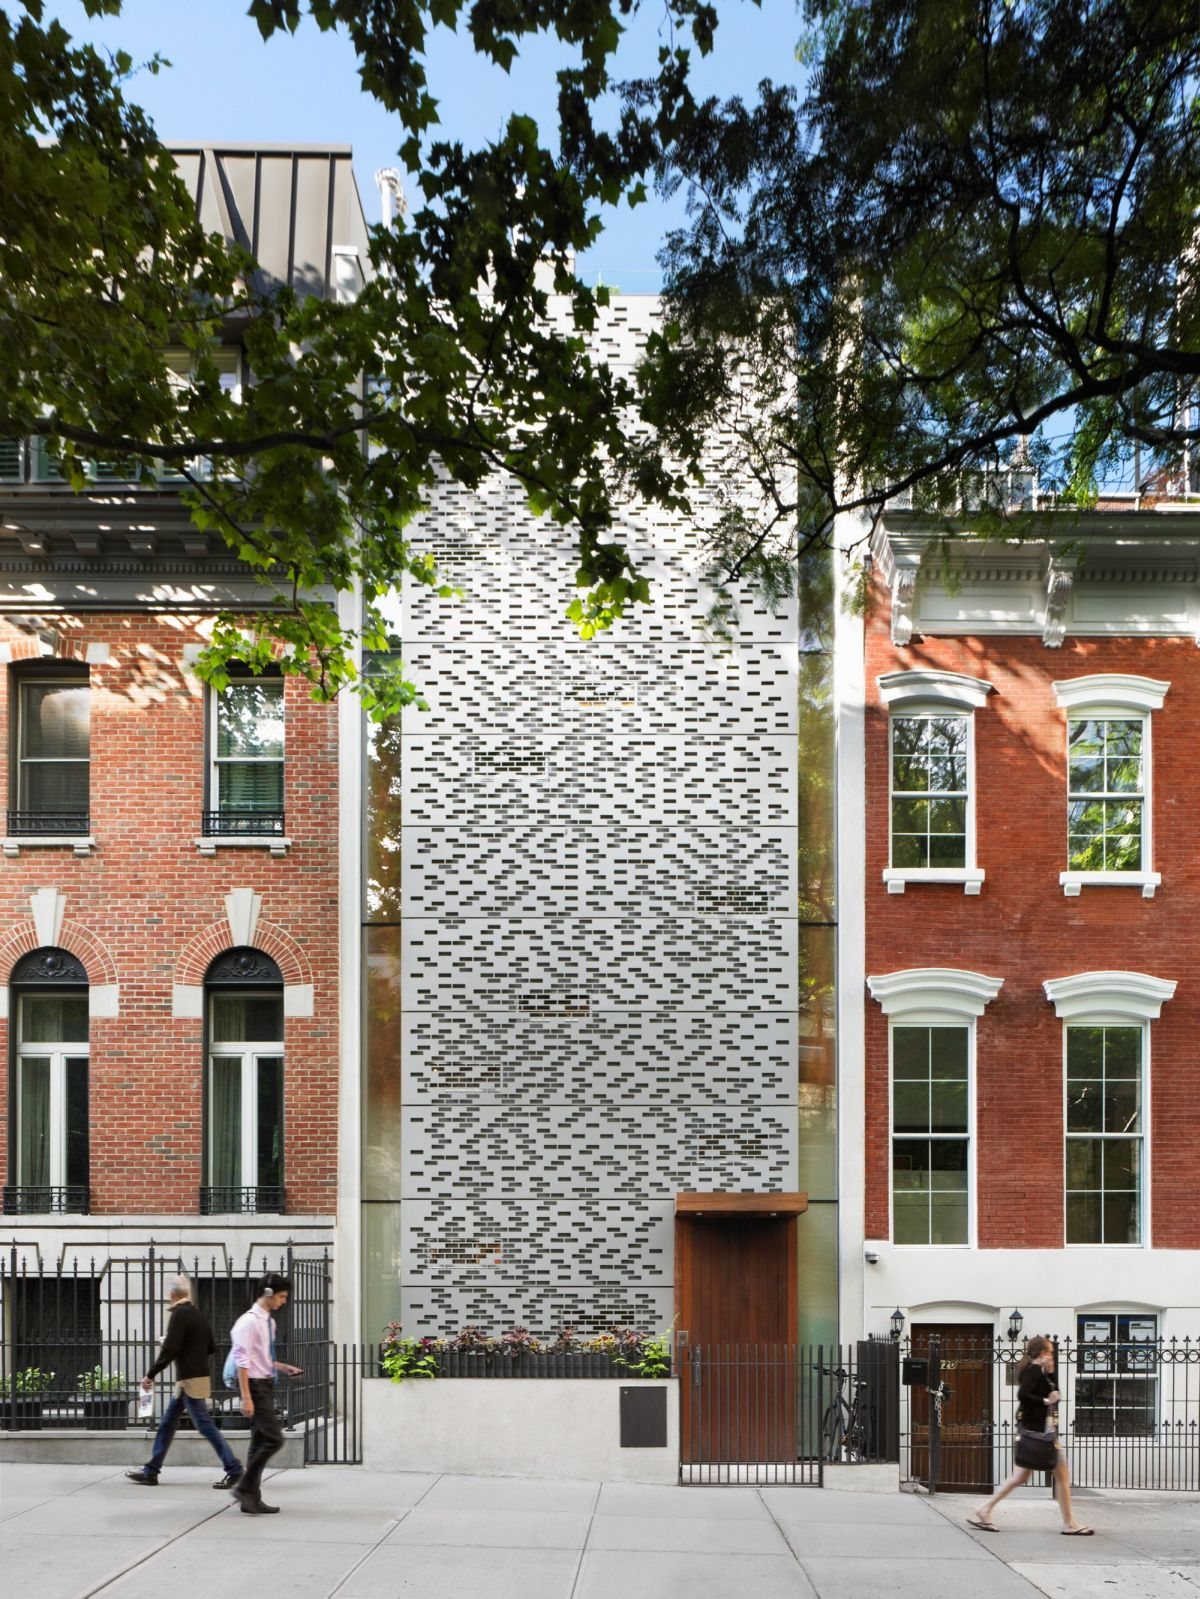 Not the typical New York townhouse: the modern aluminum facade replicates the bricks of other townhouses of the street. The facade confers privacy but allows ample lighting.